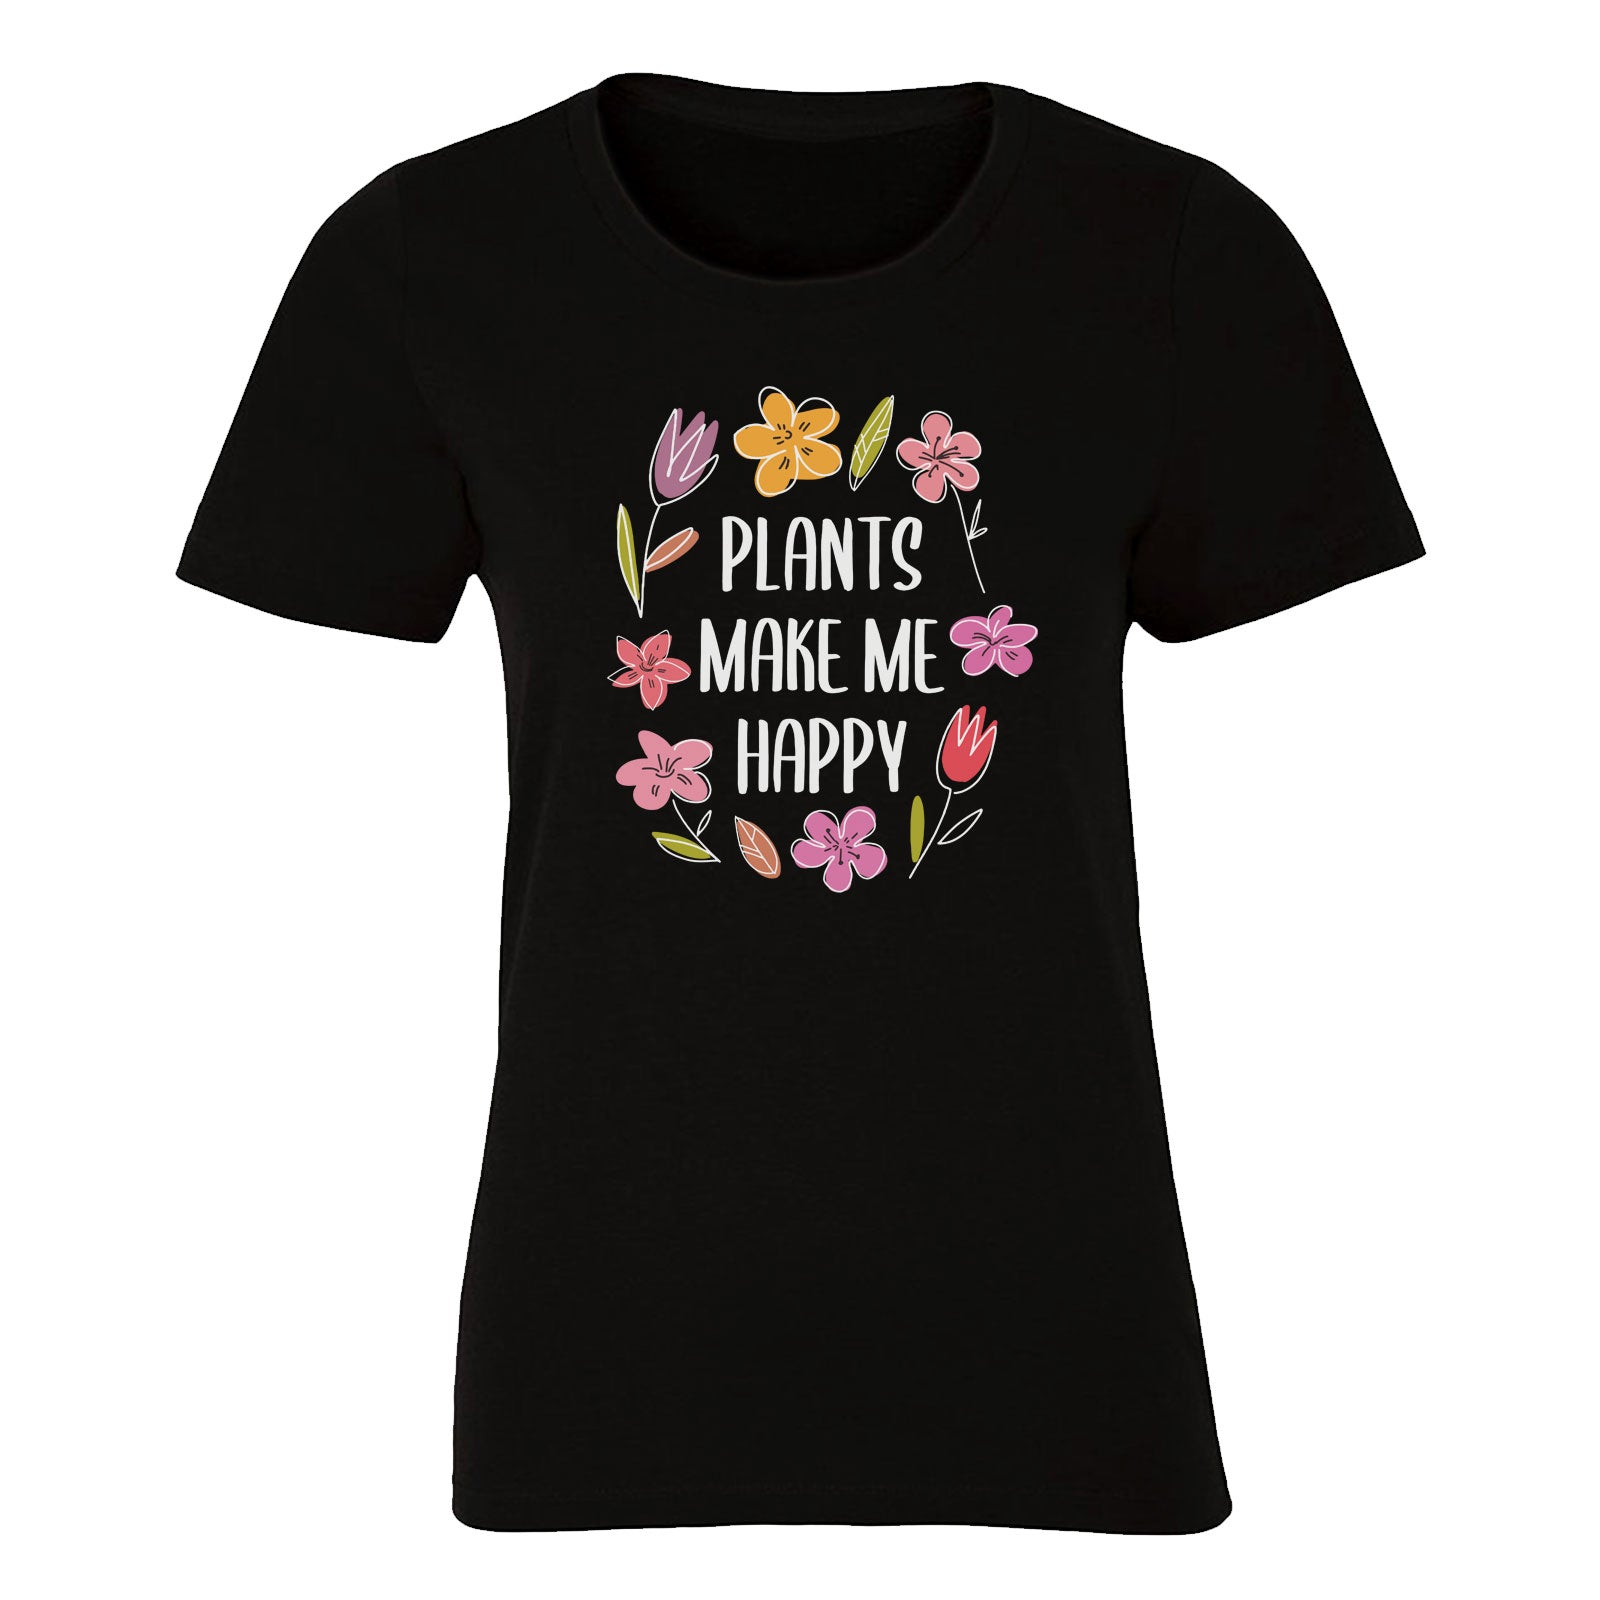 Plants Make Me Happy (Women's)